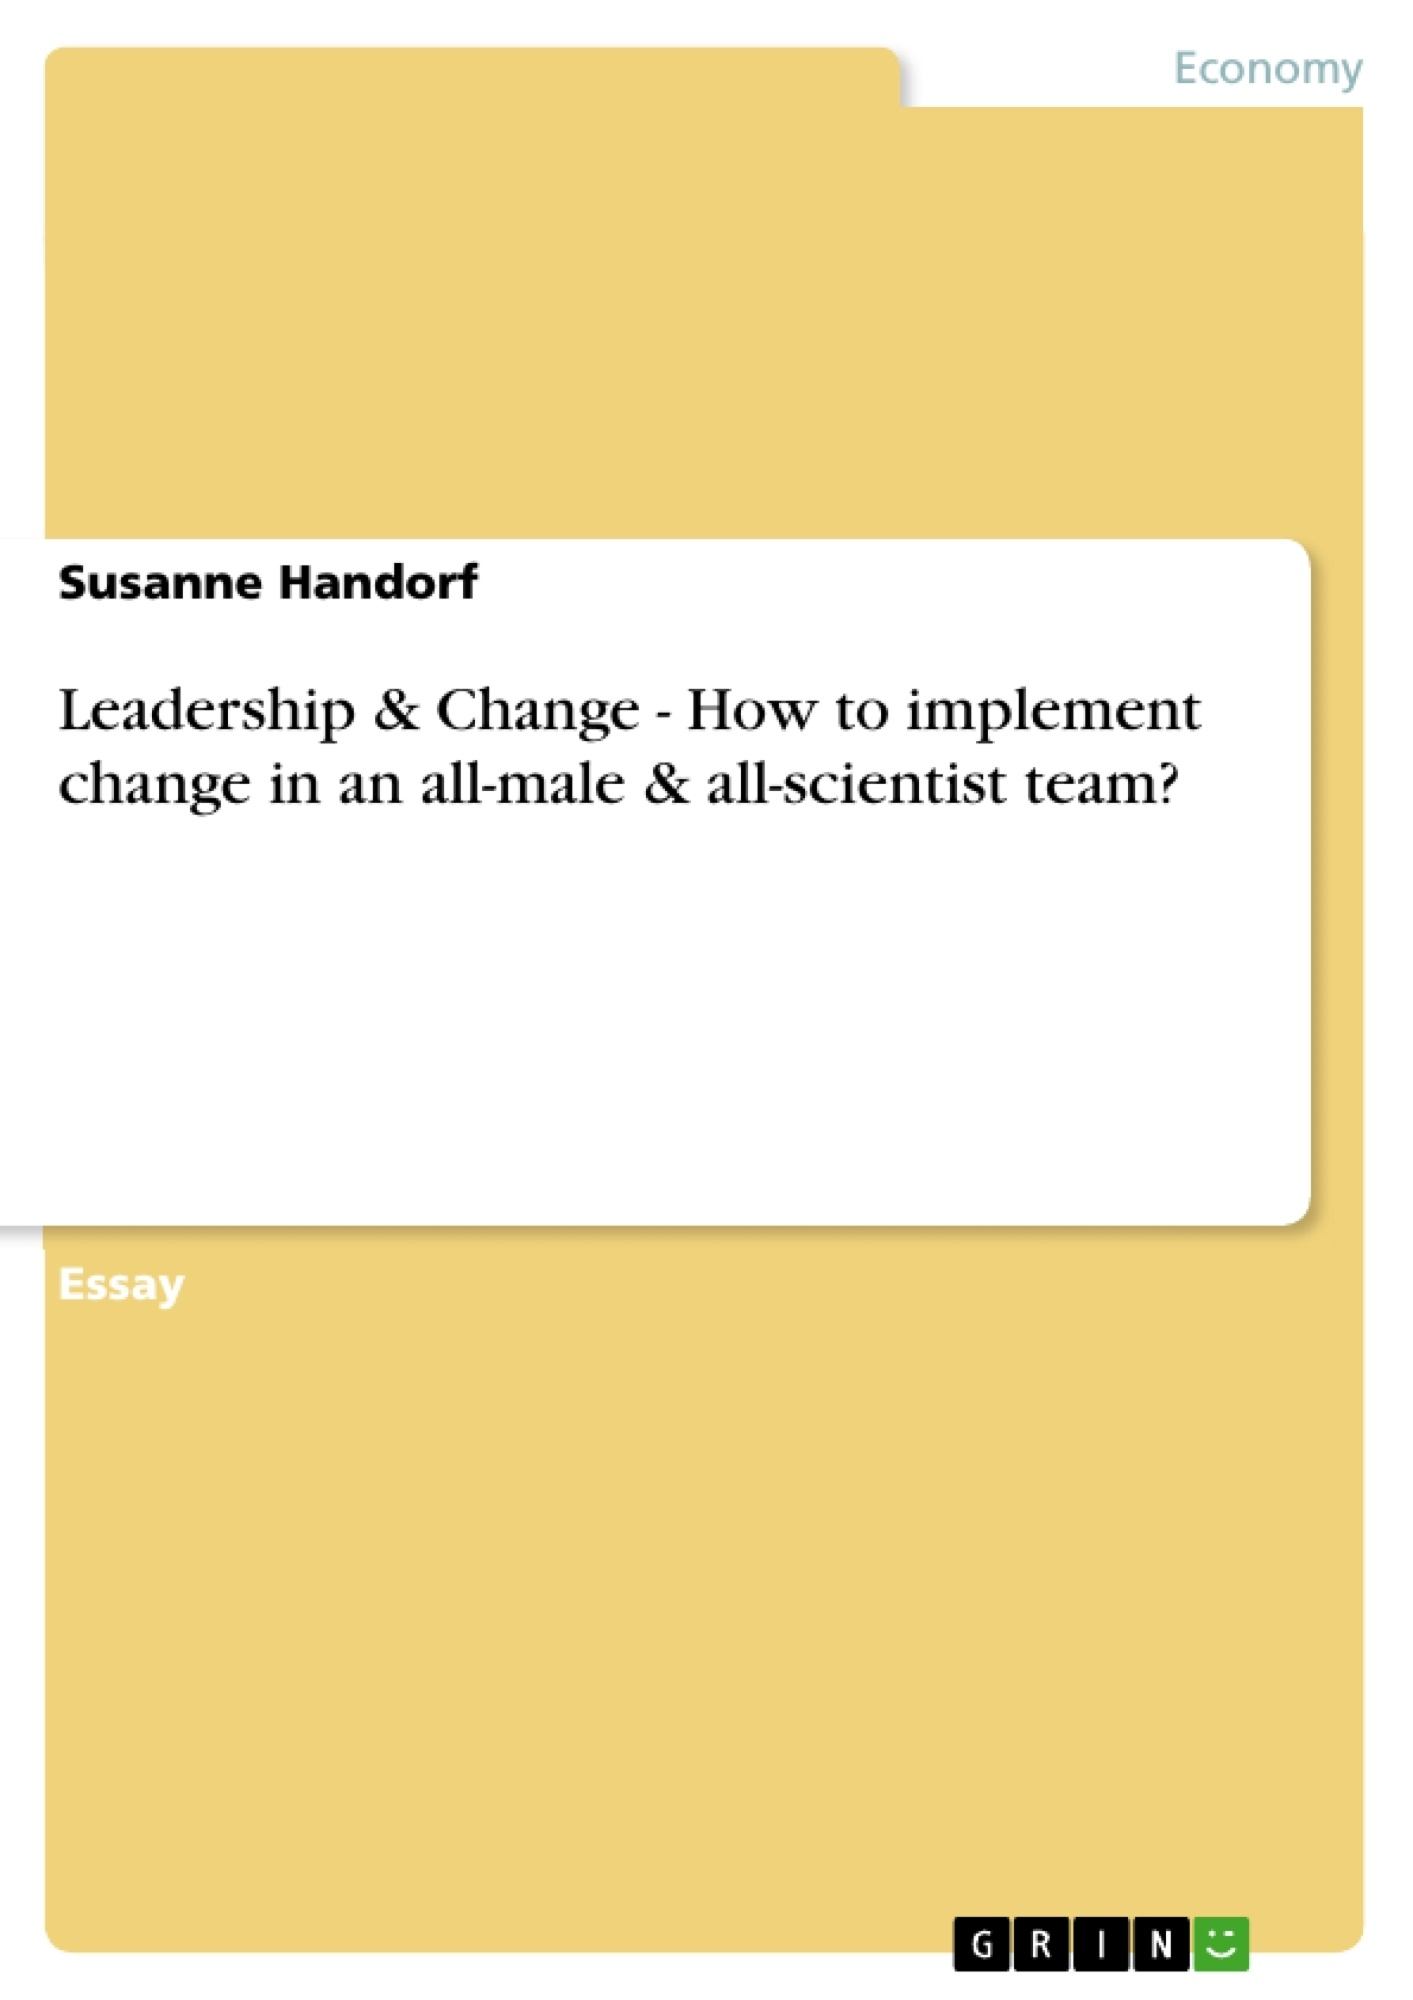 Title: Leadership & Change - How to implement change in an all-male & all-scientist team?